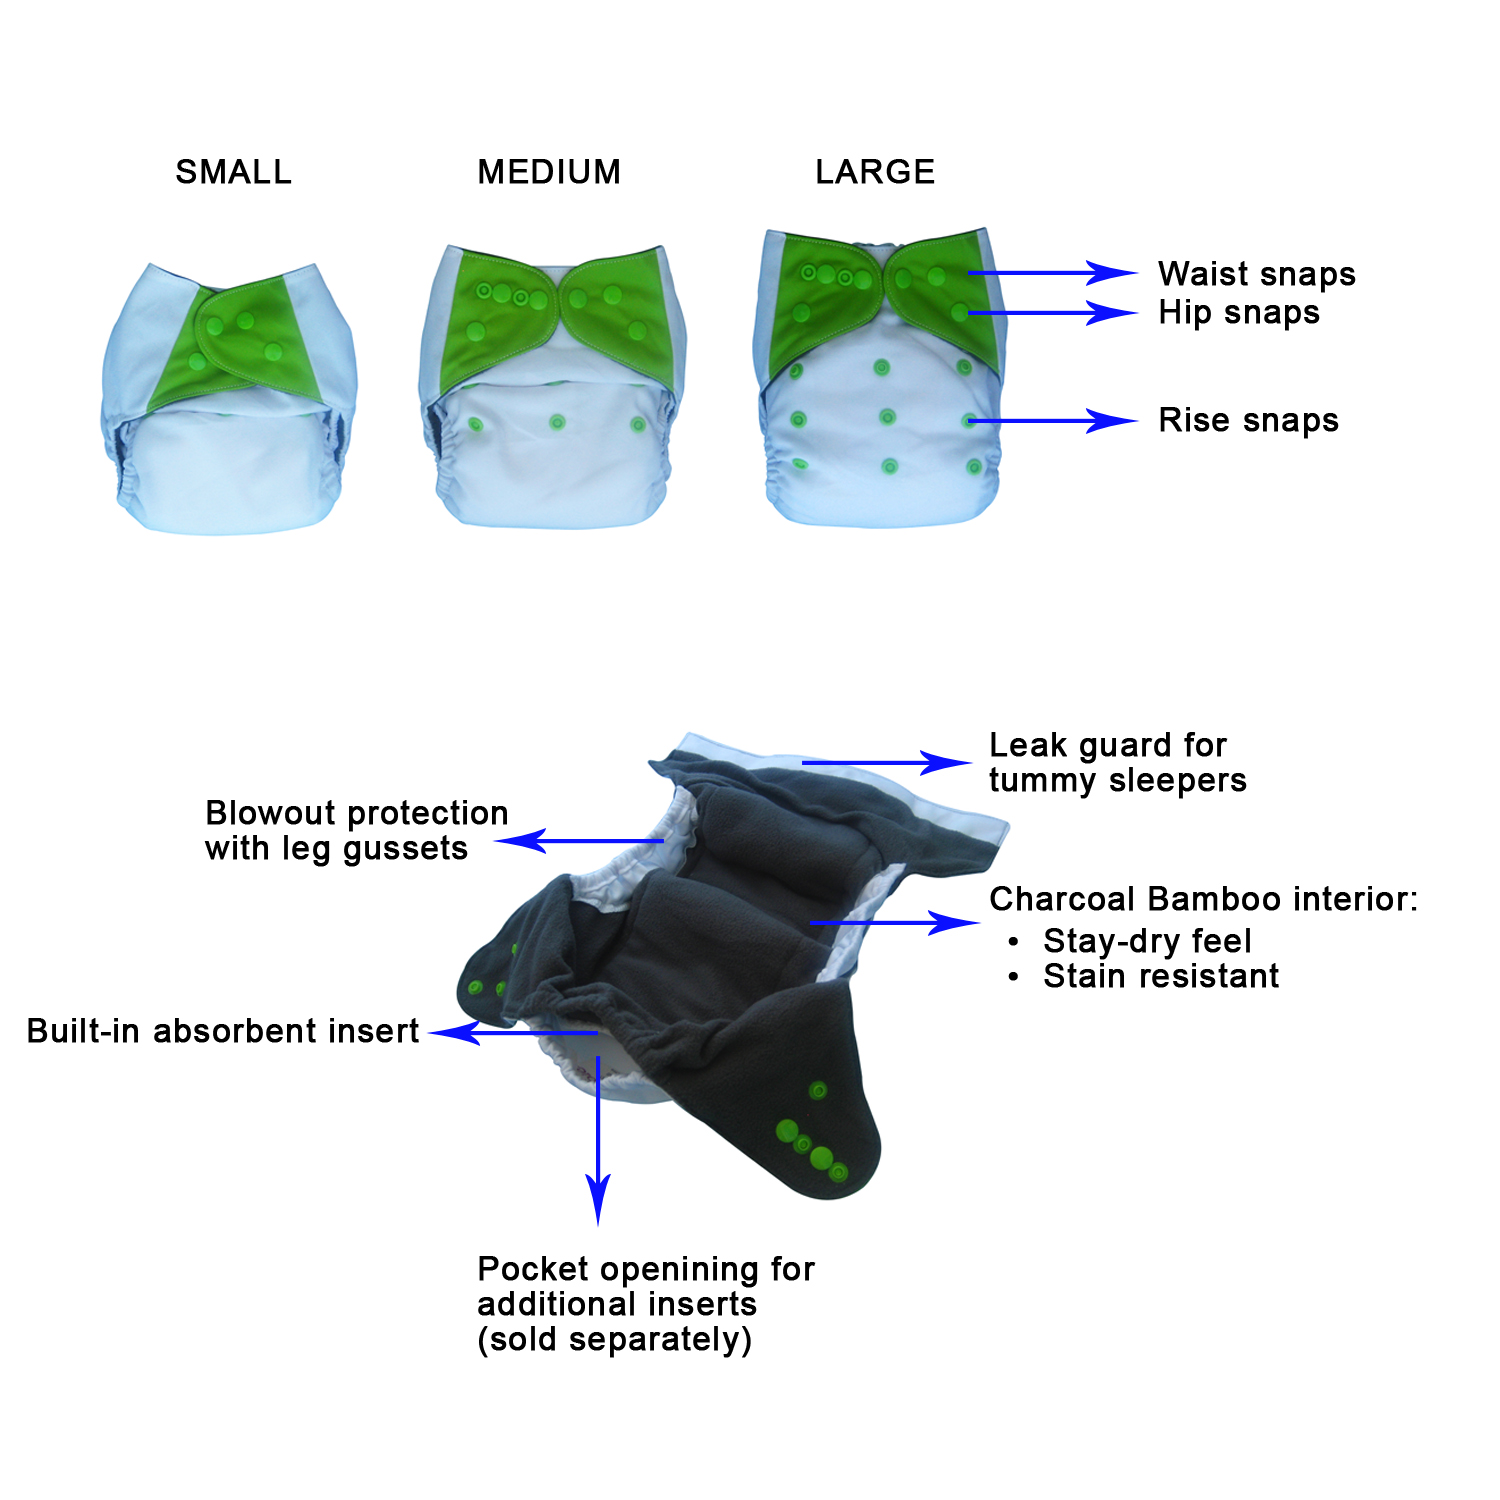 All-in-one (AIO) cloth diaper with pocket option